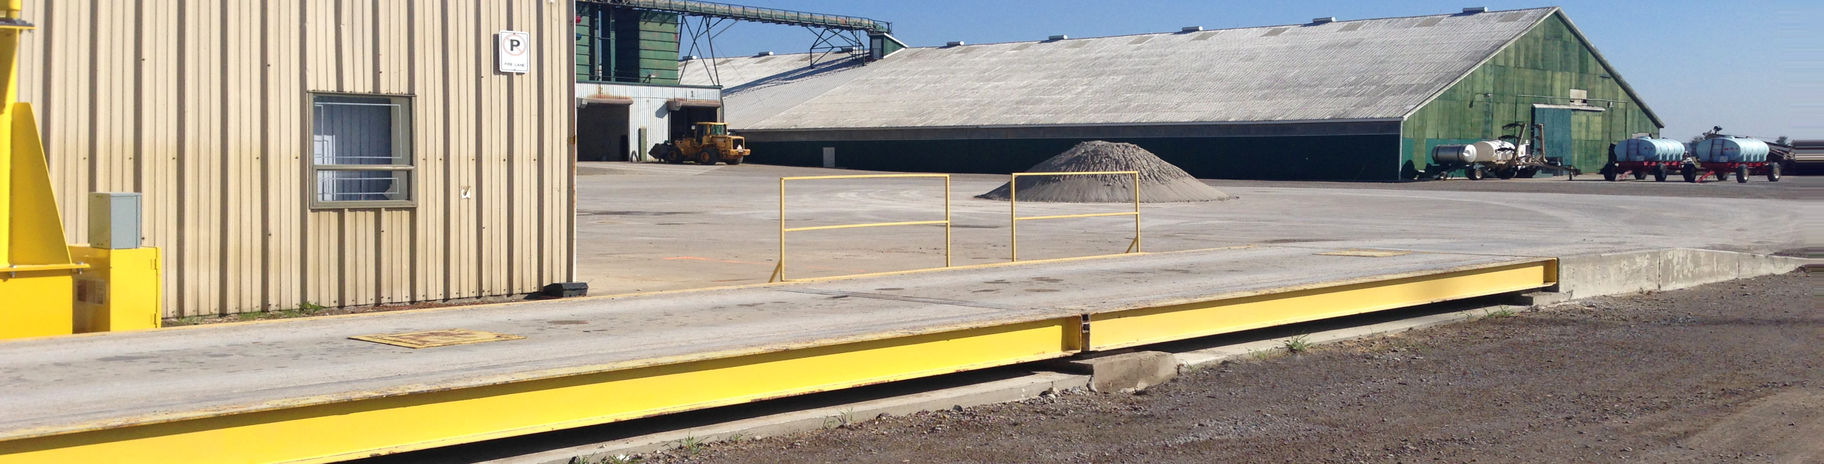 Rutherford, Ontario, truck weighing scale or weighbridge installation.